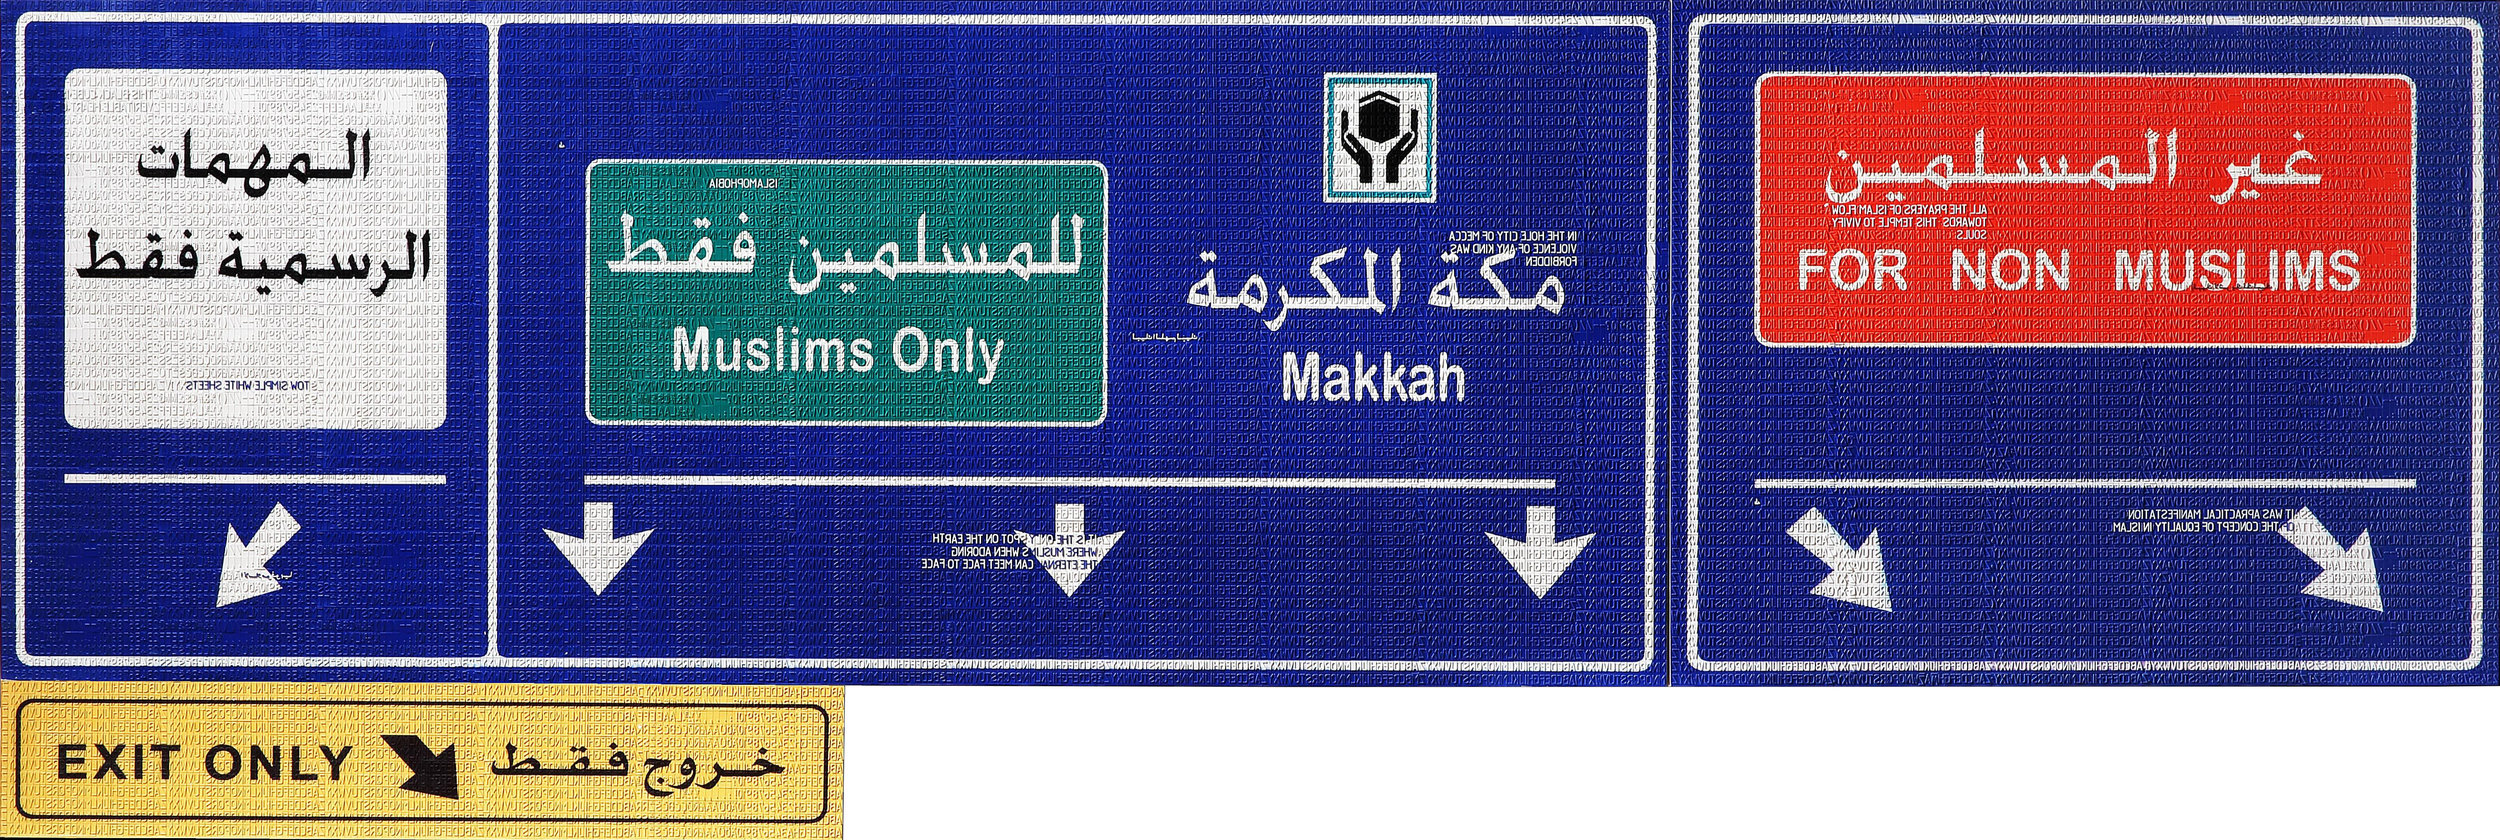 Abdulnasser Gharem. Road to Makkah (2014)Digital print and lacquer paint on rubber stamps on aluminum. Image courtesy of the artist and UMOCA.